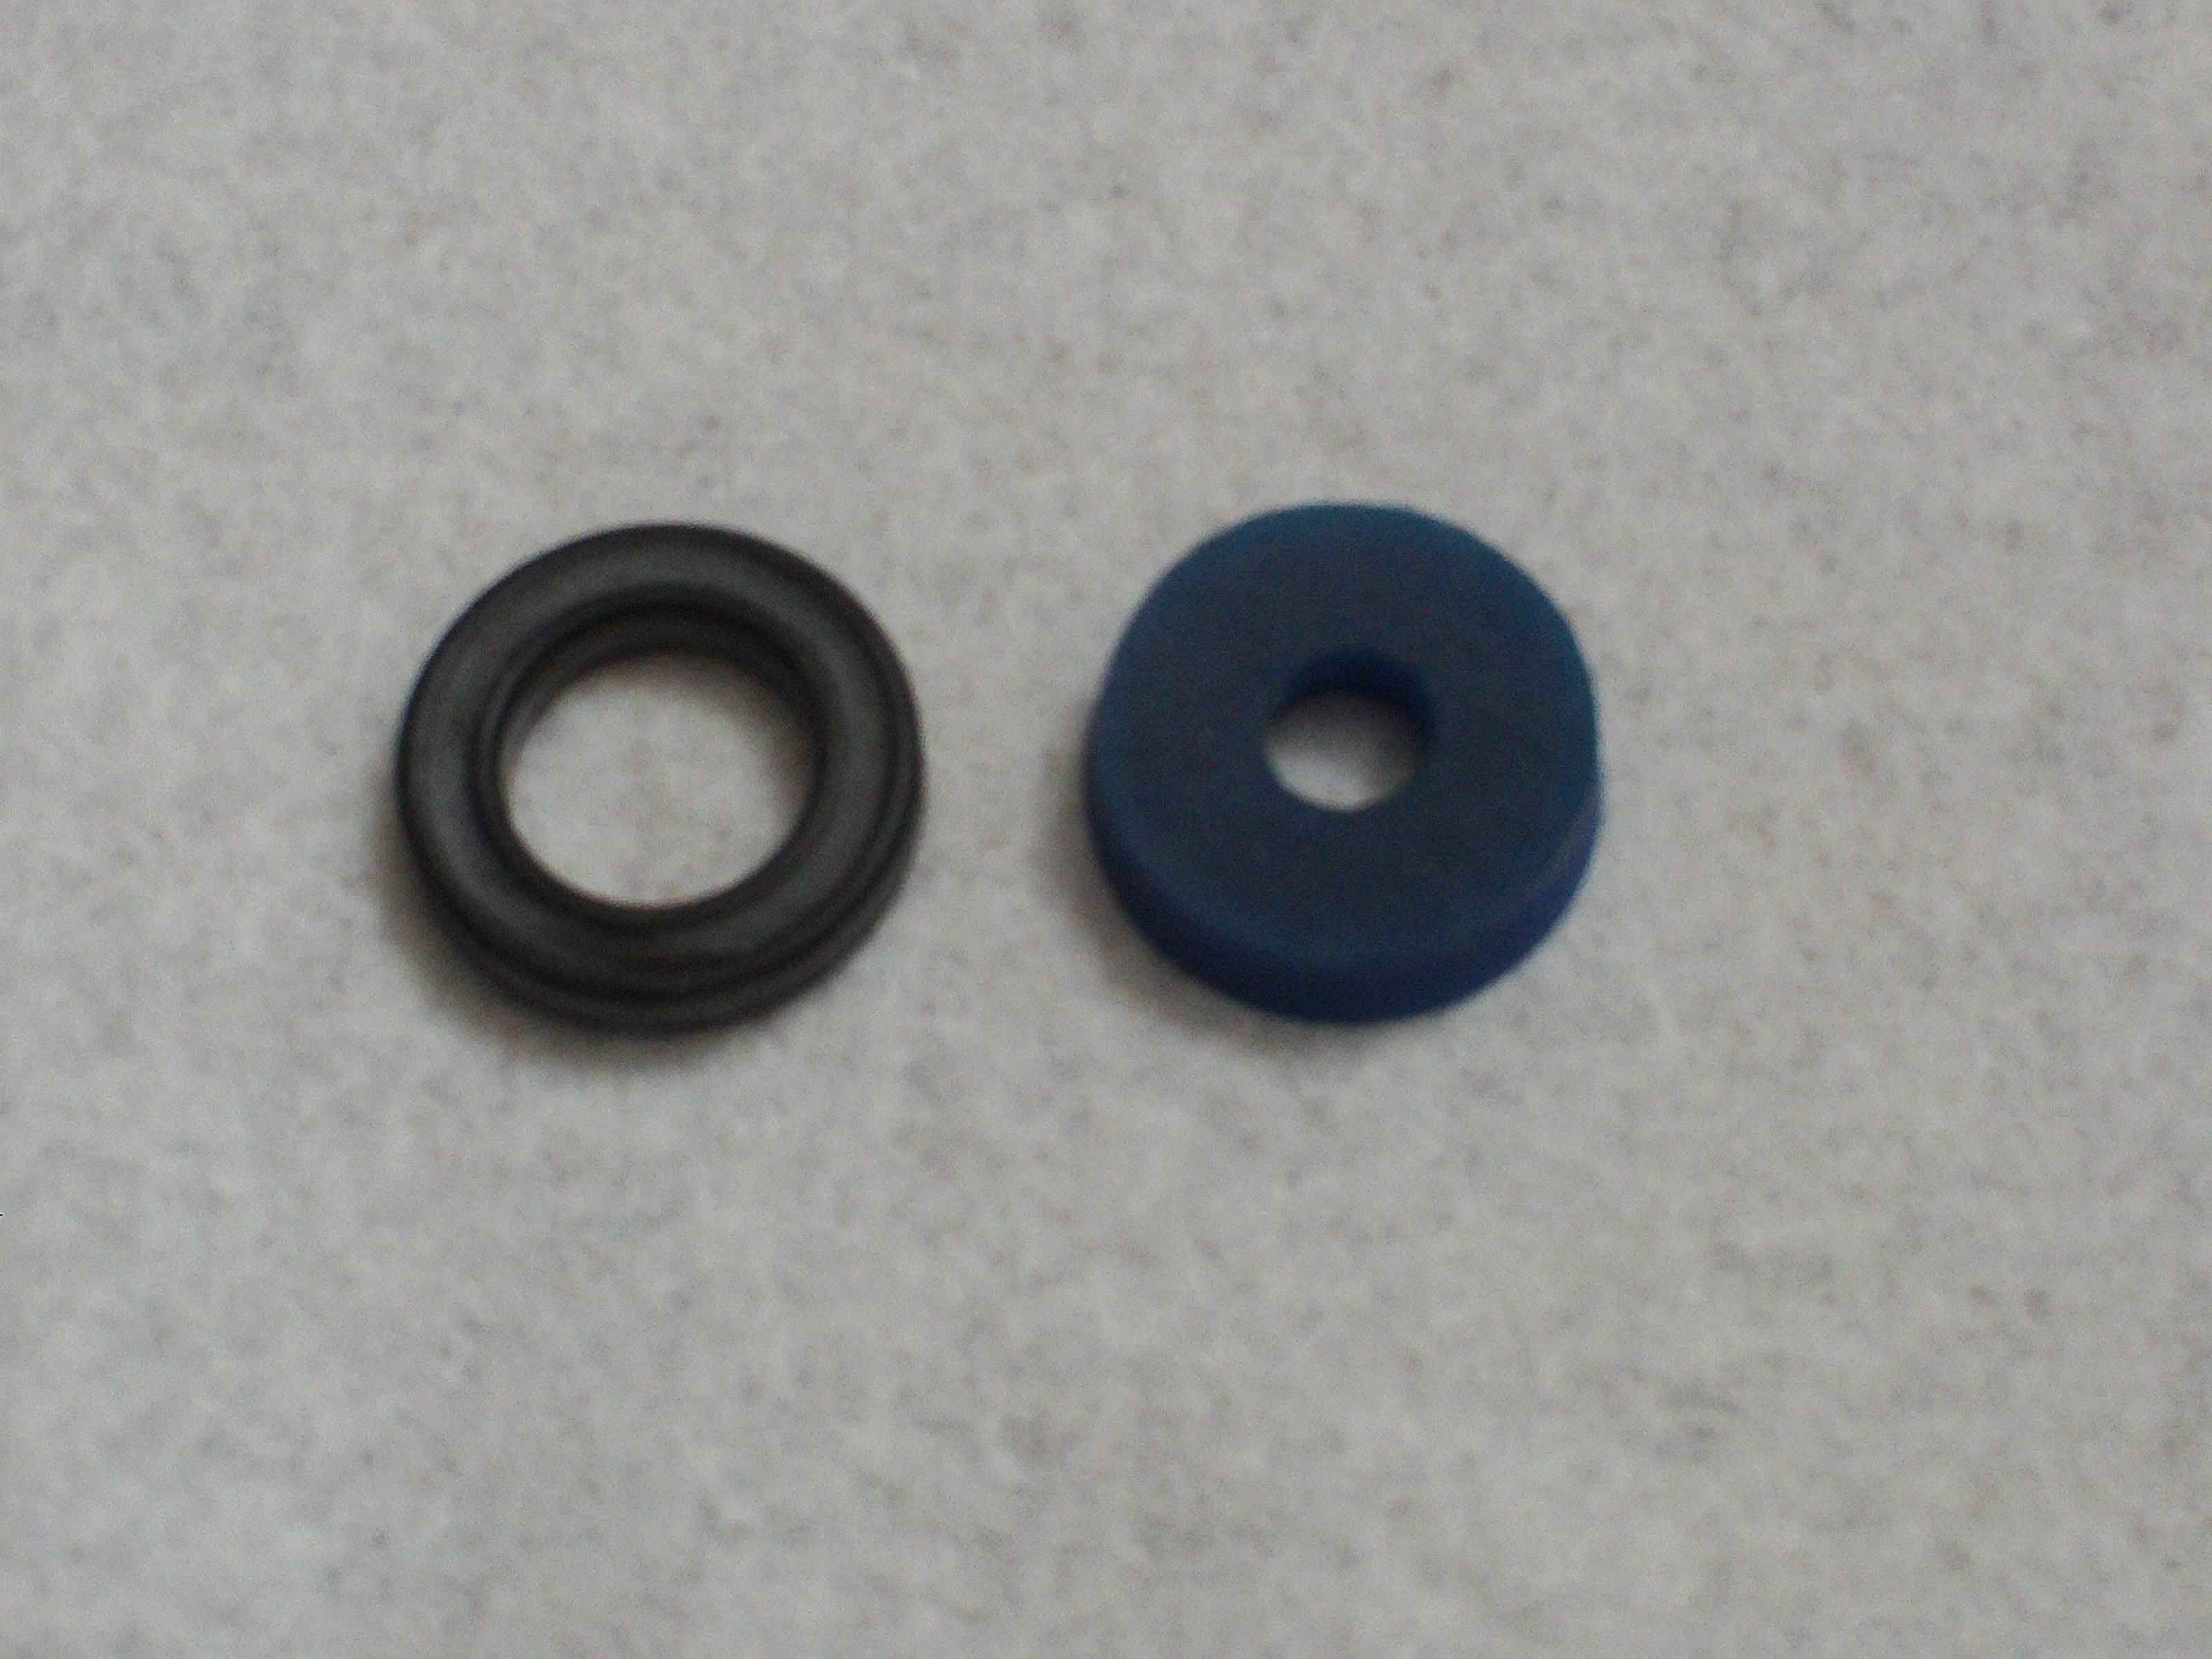 Valve Bank O rings options